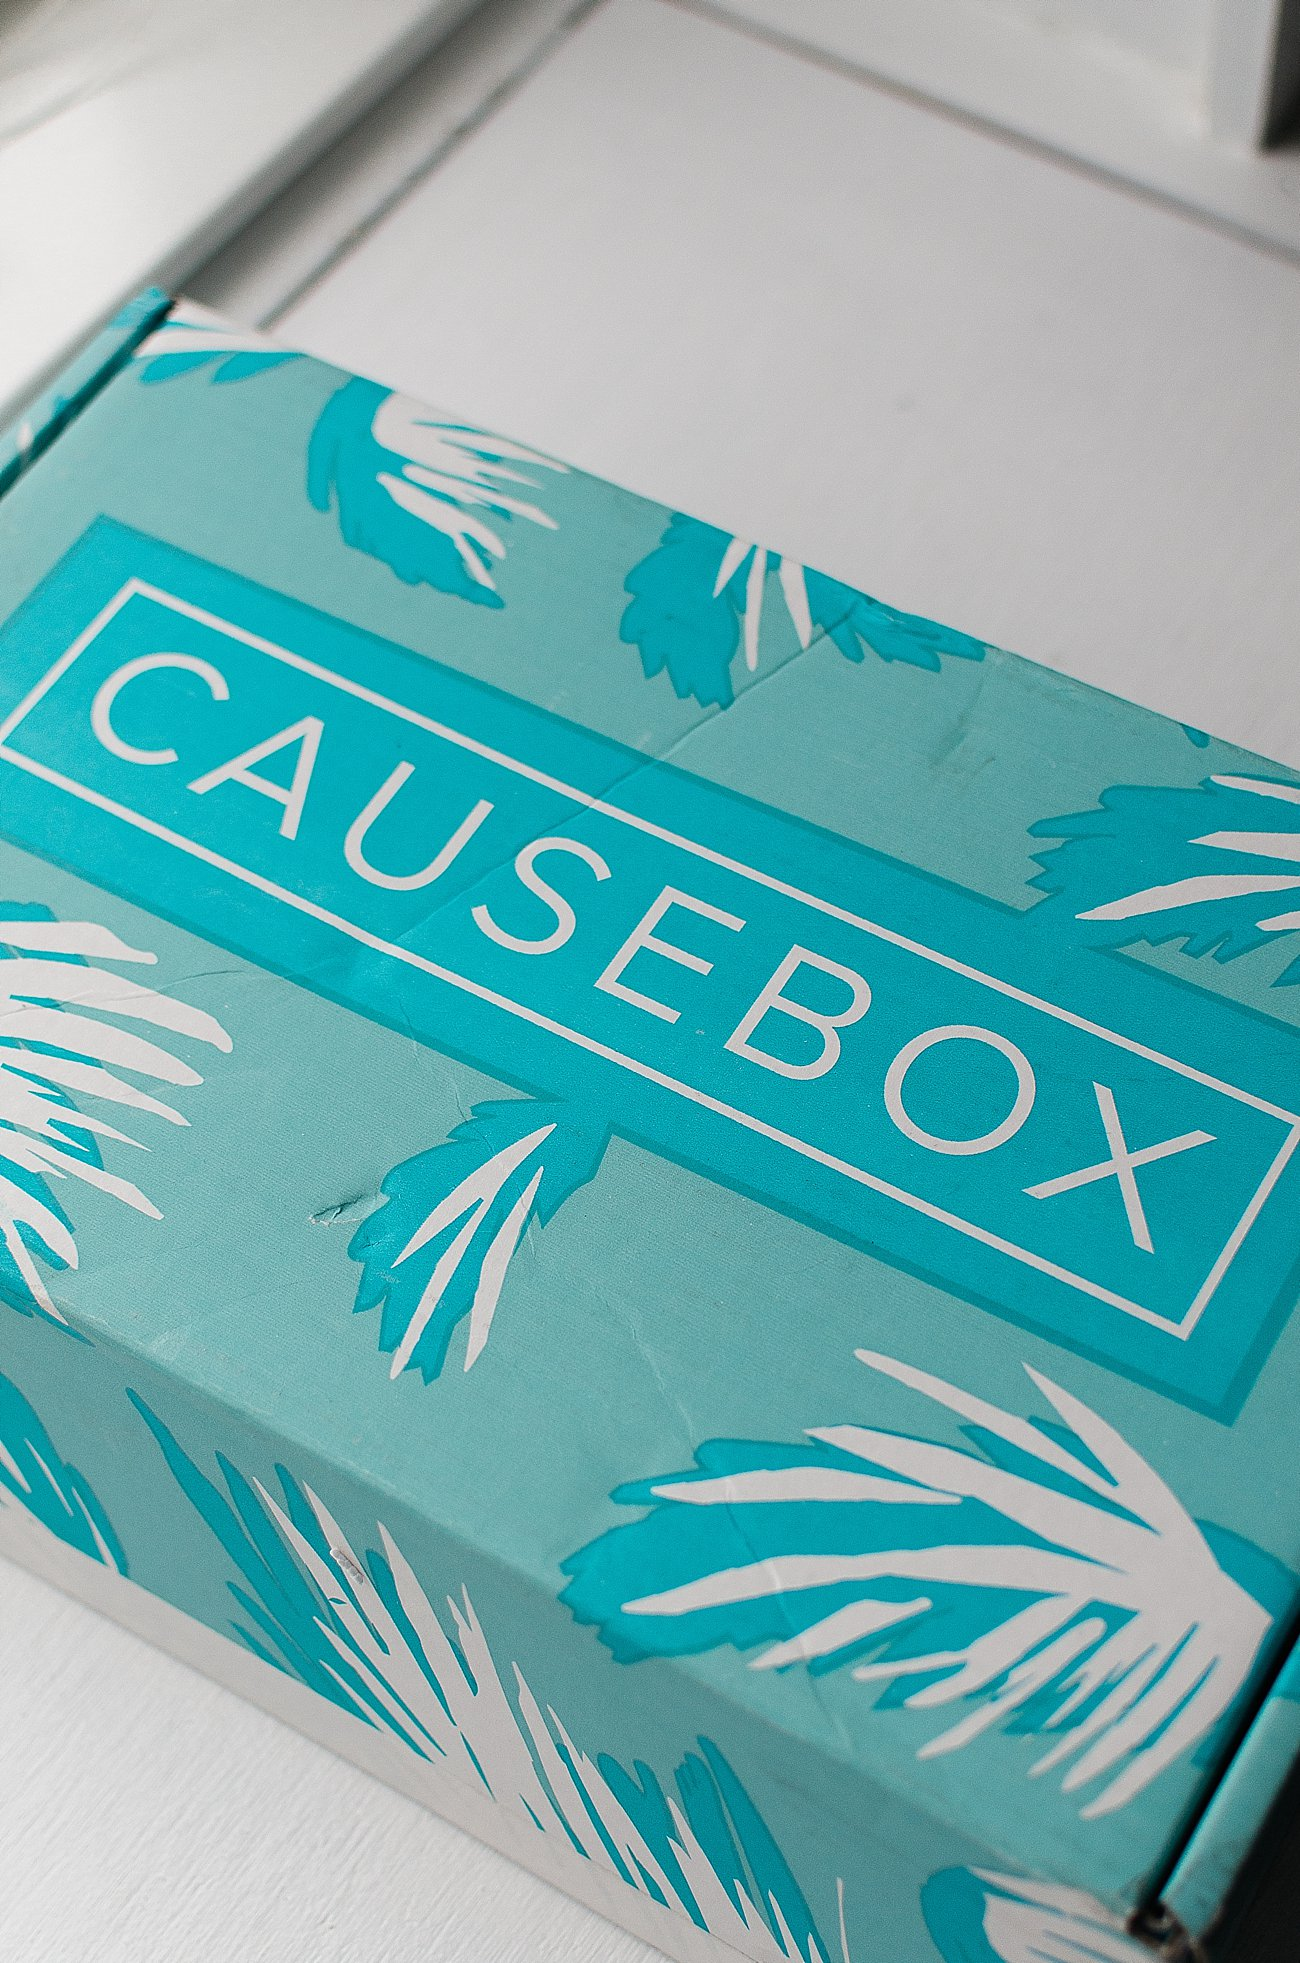 CAUSEBOX Summer 2016 Review #StyleMyCAUSEBOX #MyCAUSEBOX #CAUSEBOX (1)